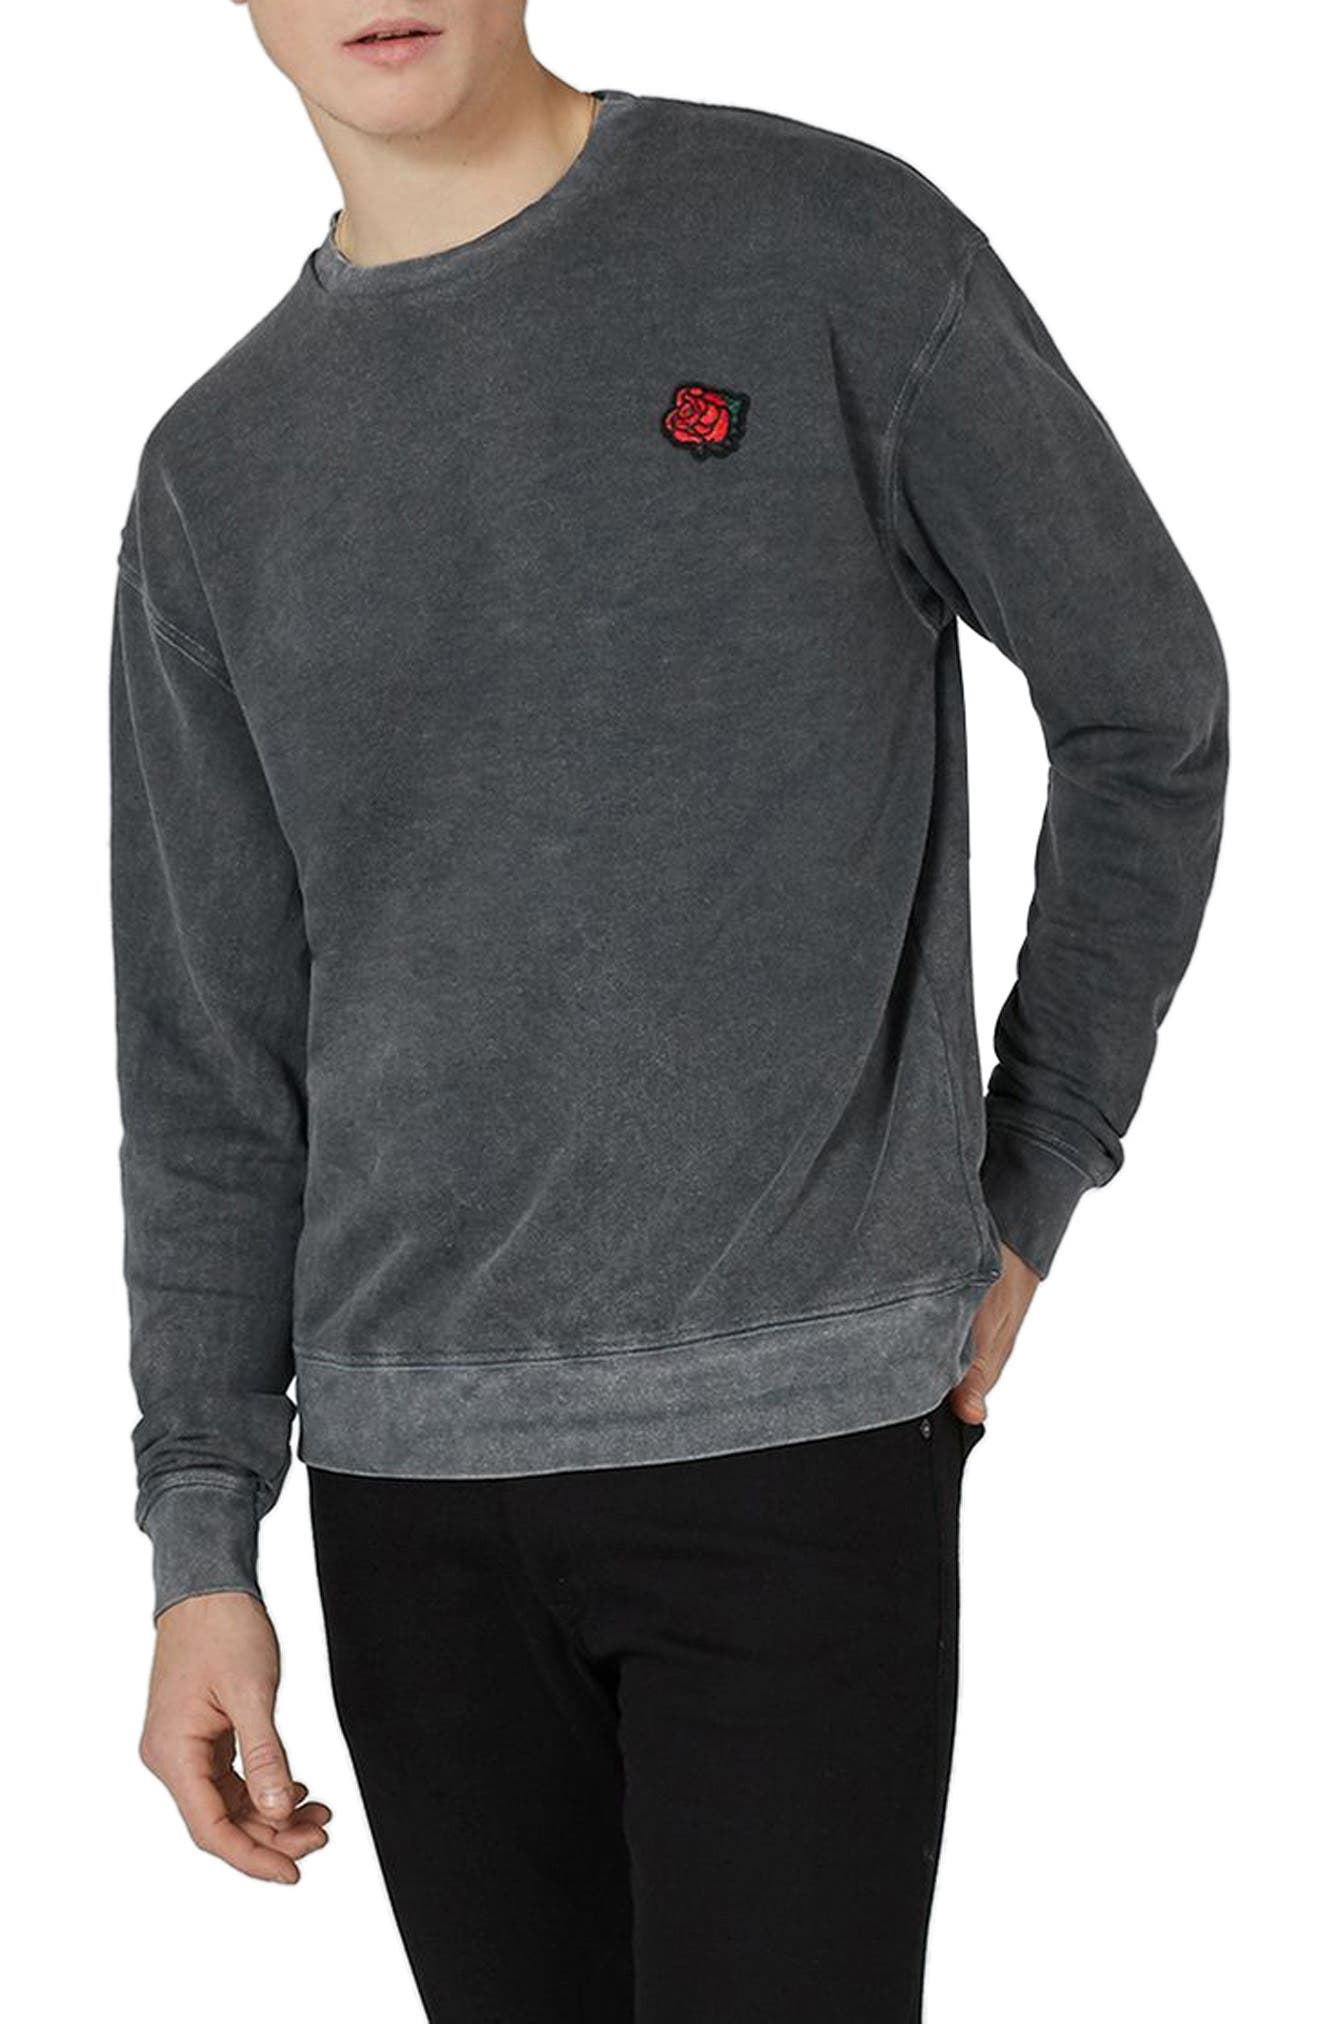 Percy Rose Embroidered Sweatshirt,                             Main thumbnail 1, color,                             Grey